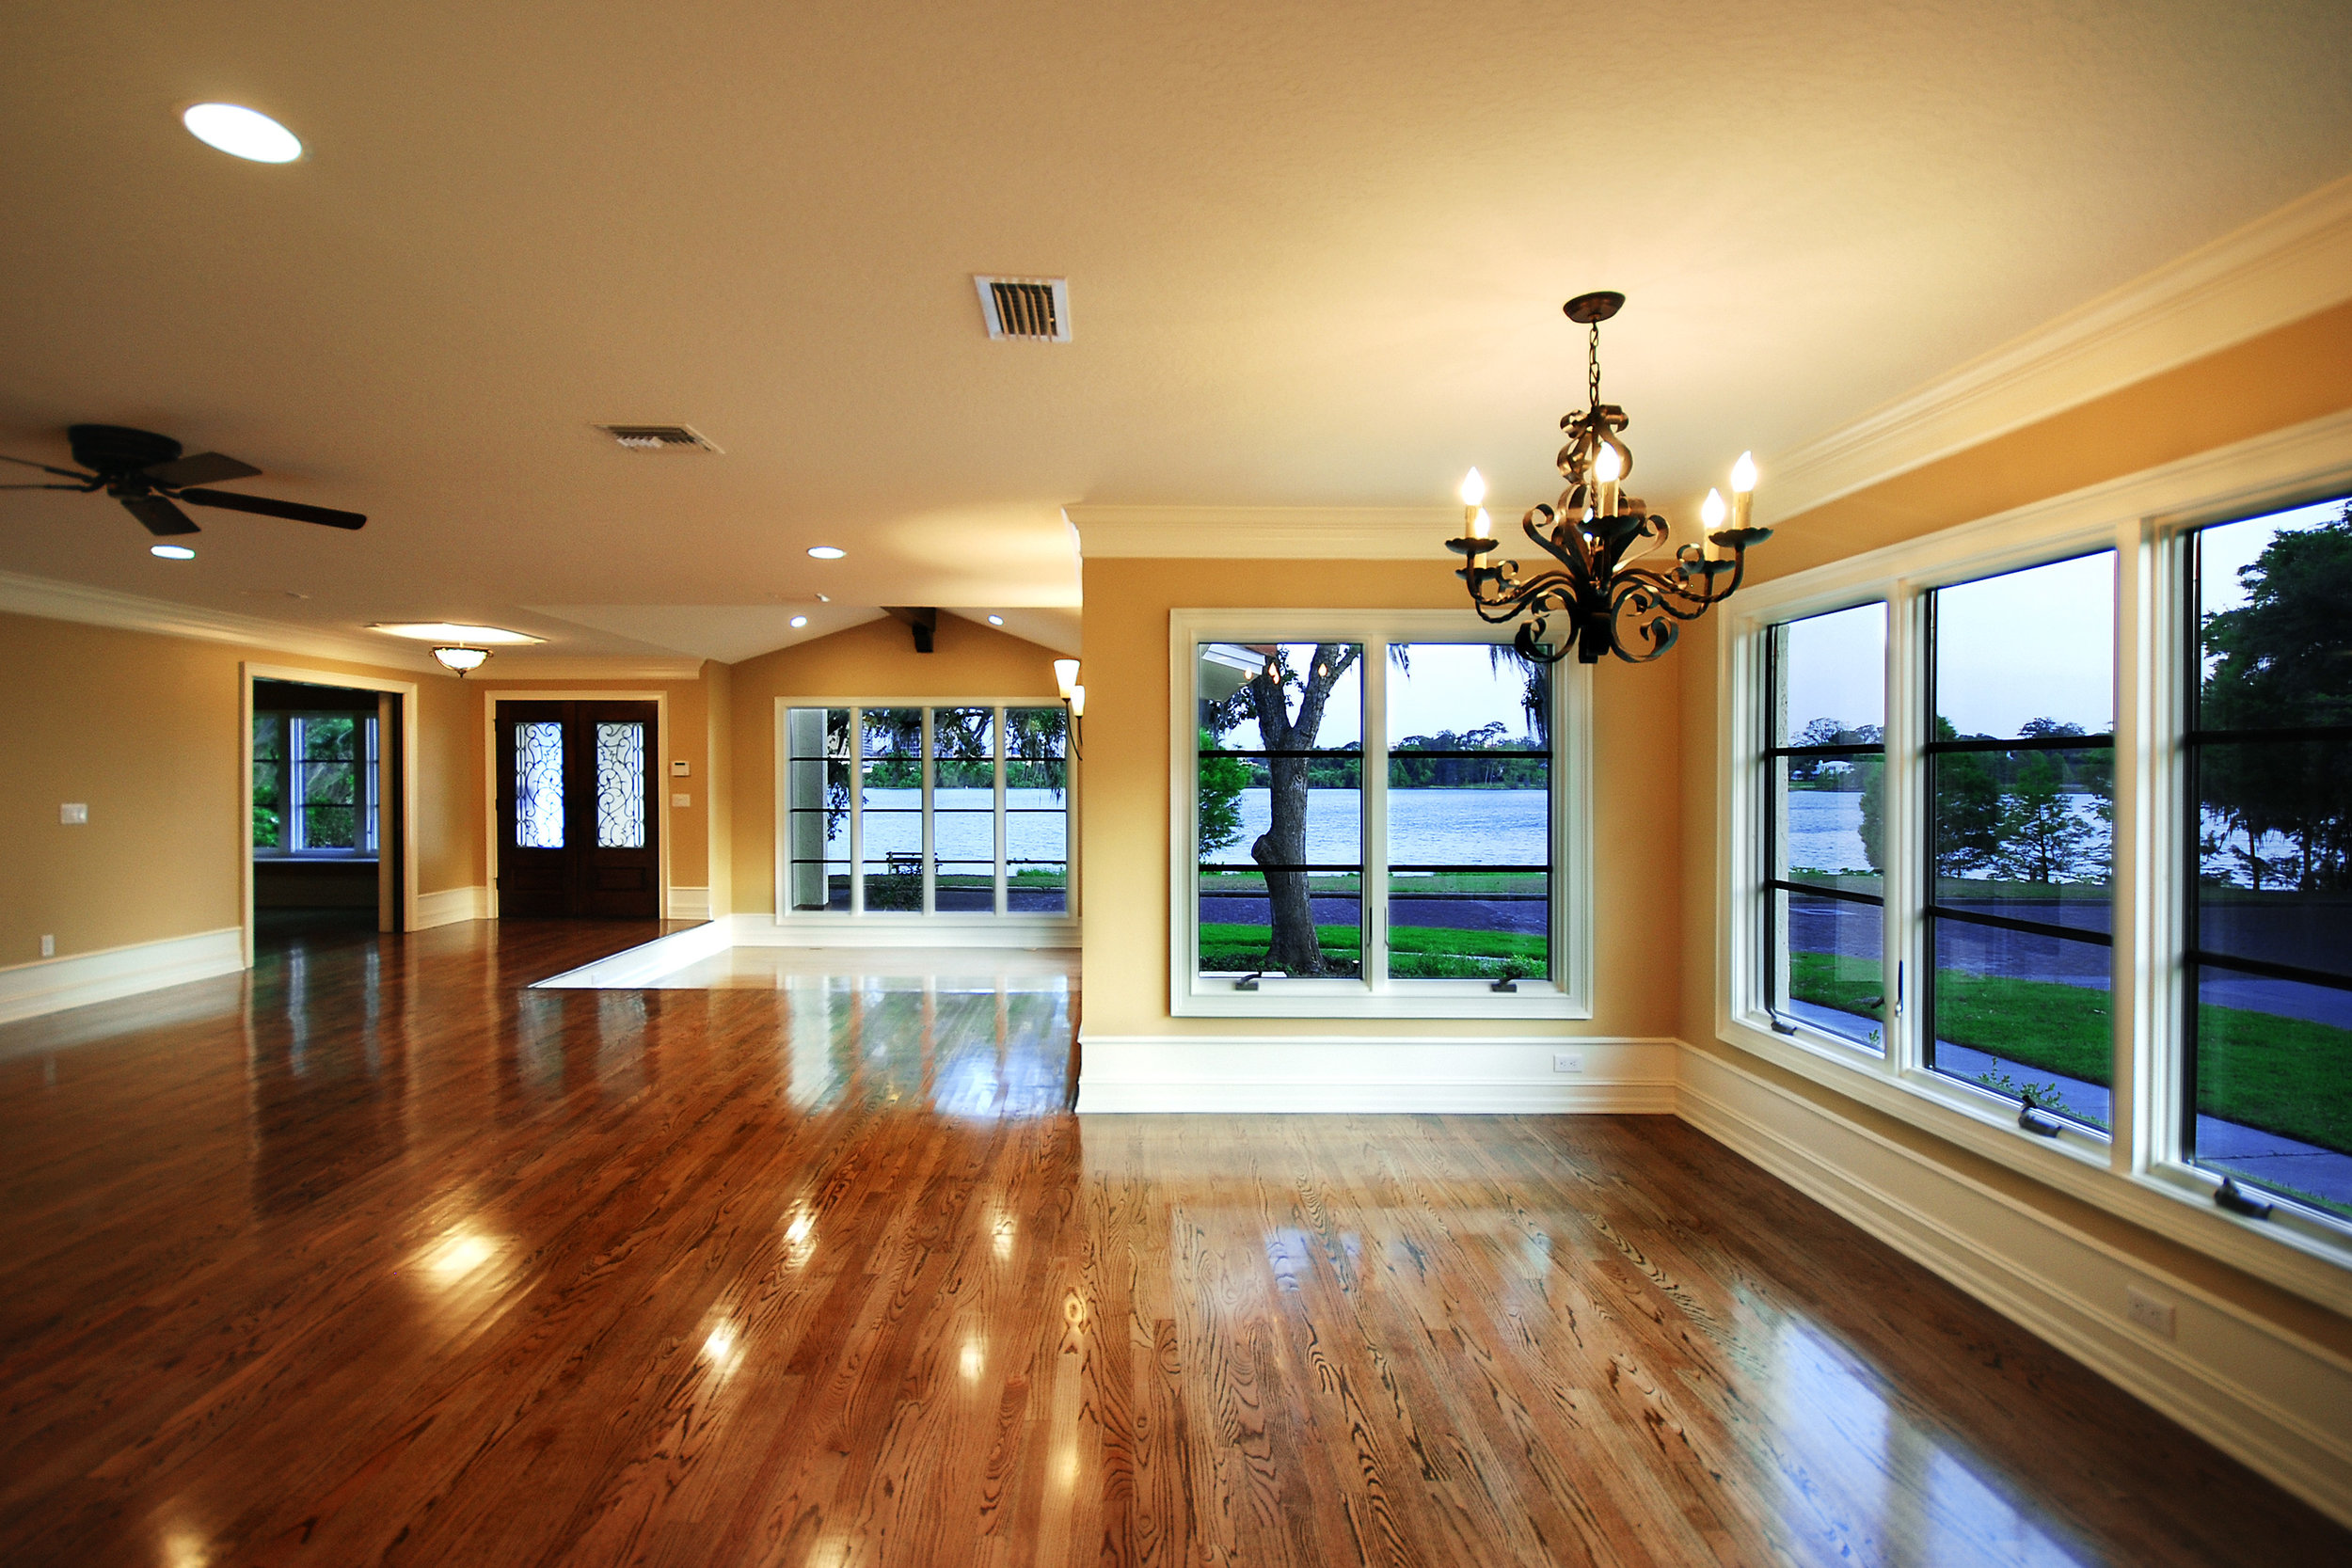 College-Park-Home-Renovation-Interior-Project-After-Photos.jpg